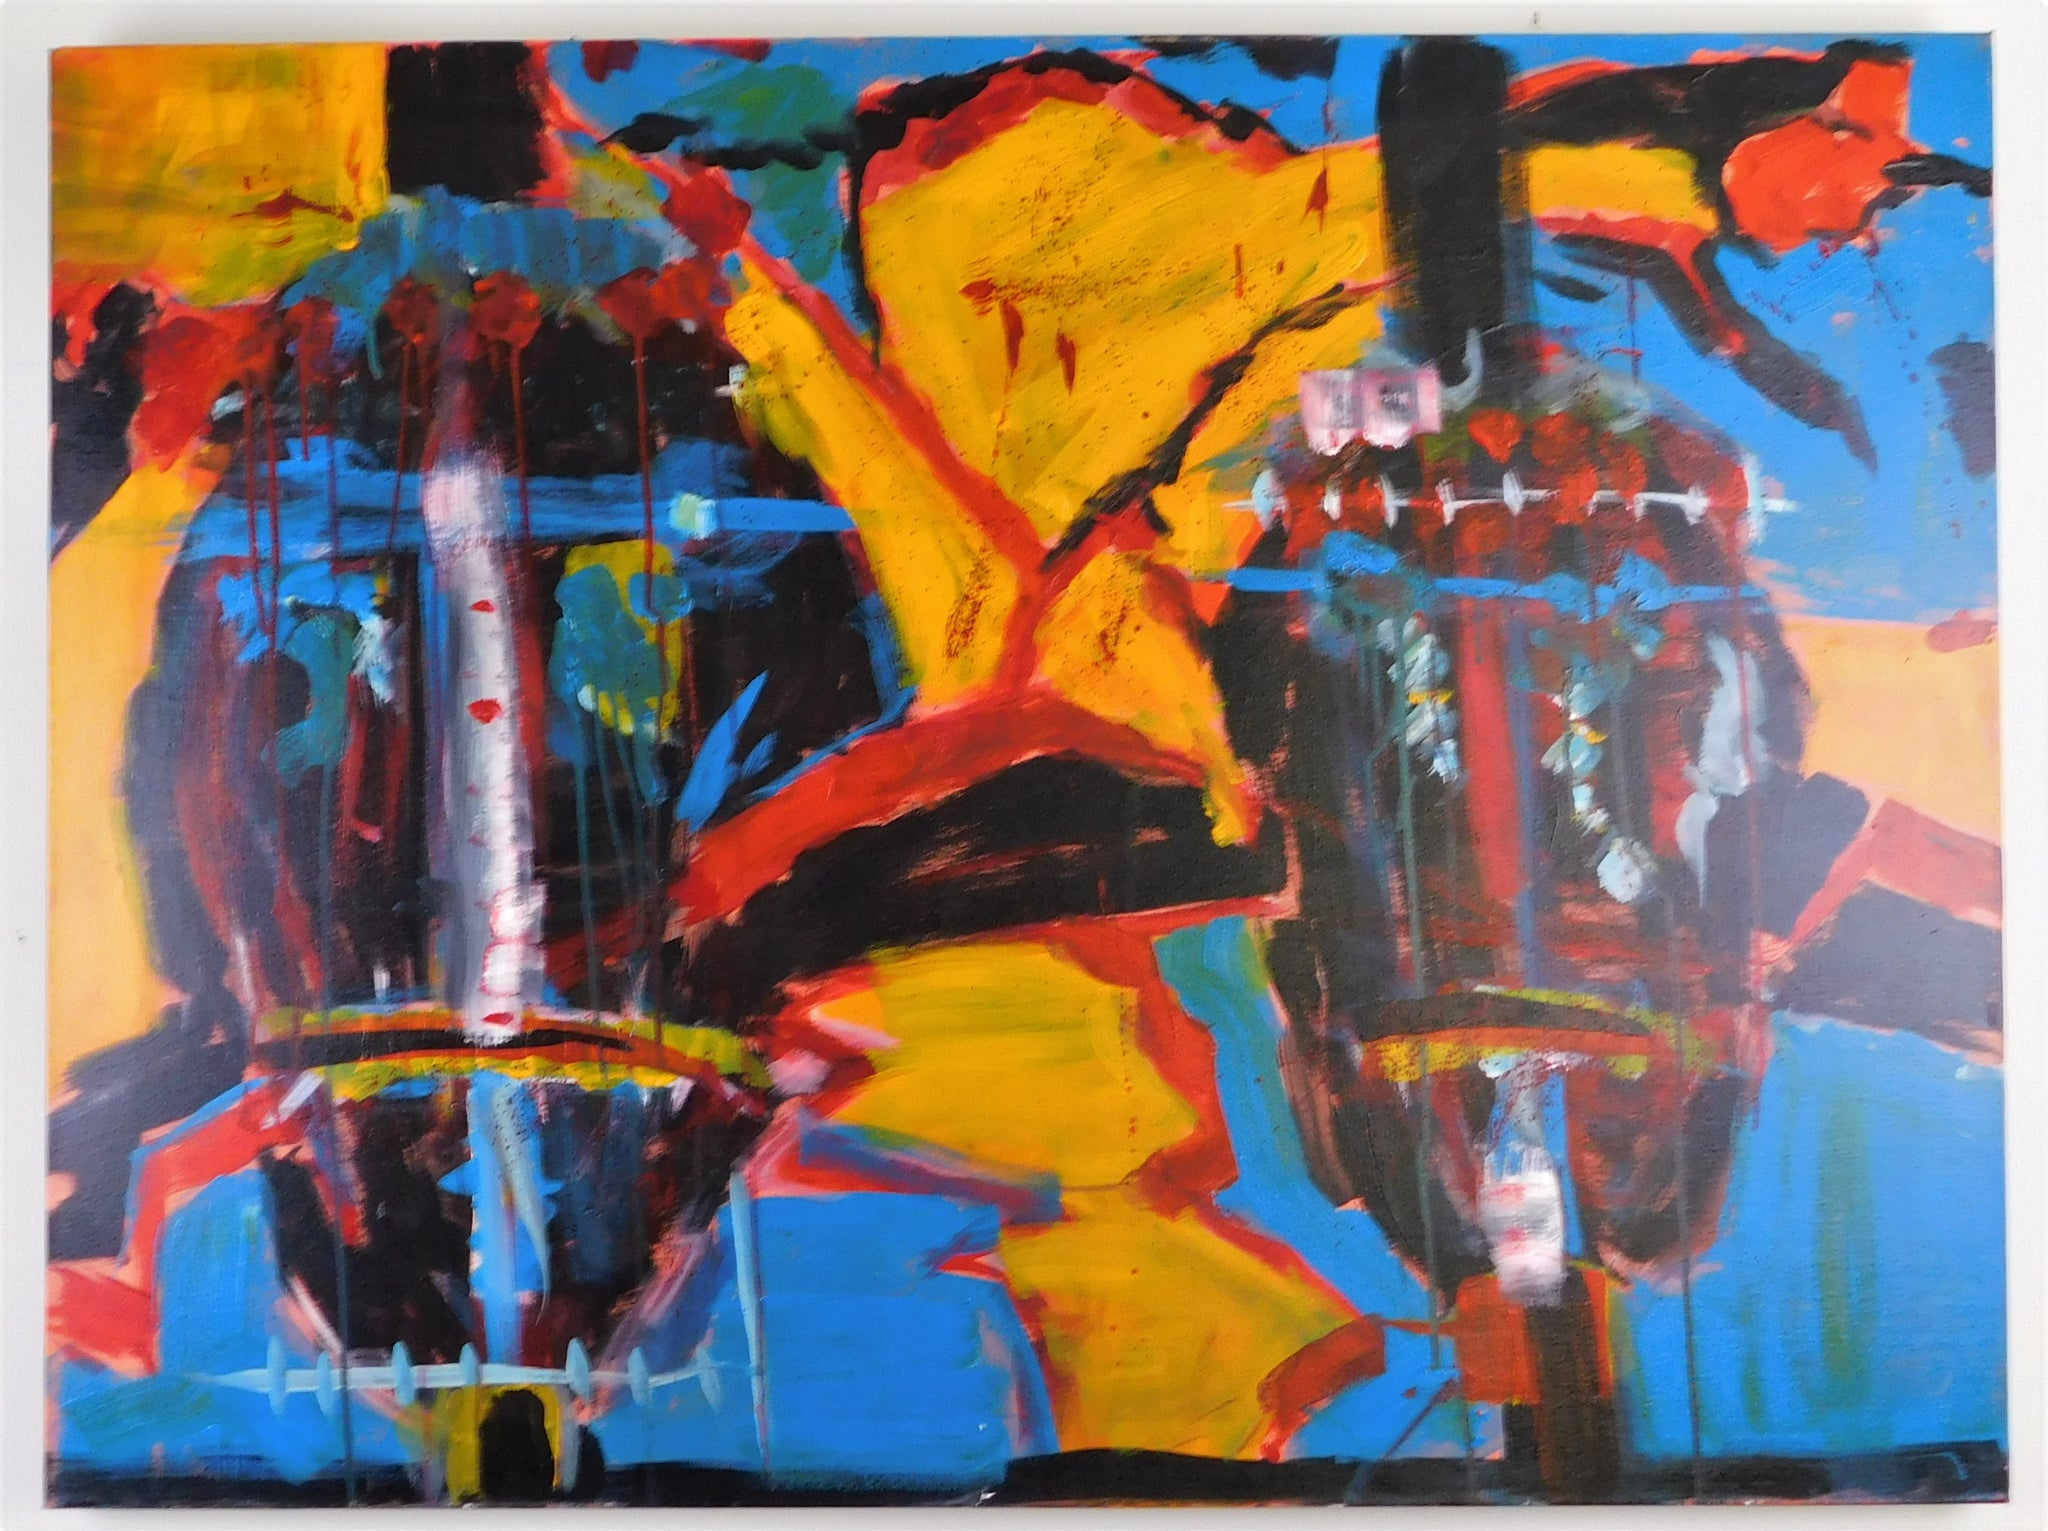 Opus III - Hermann Fischer Acrylic on Canvas